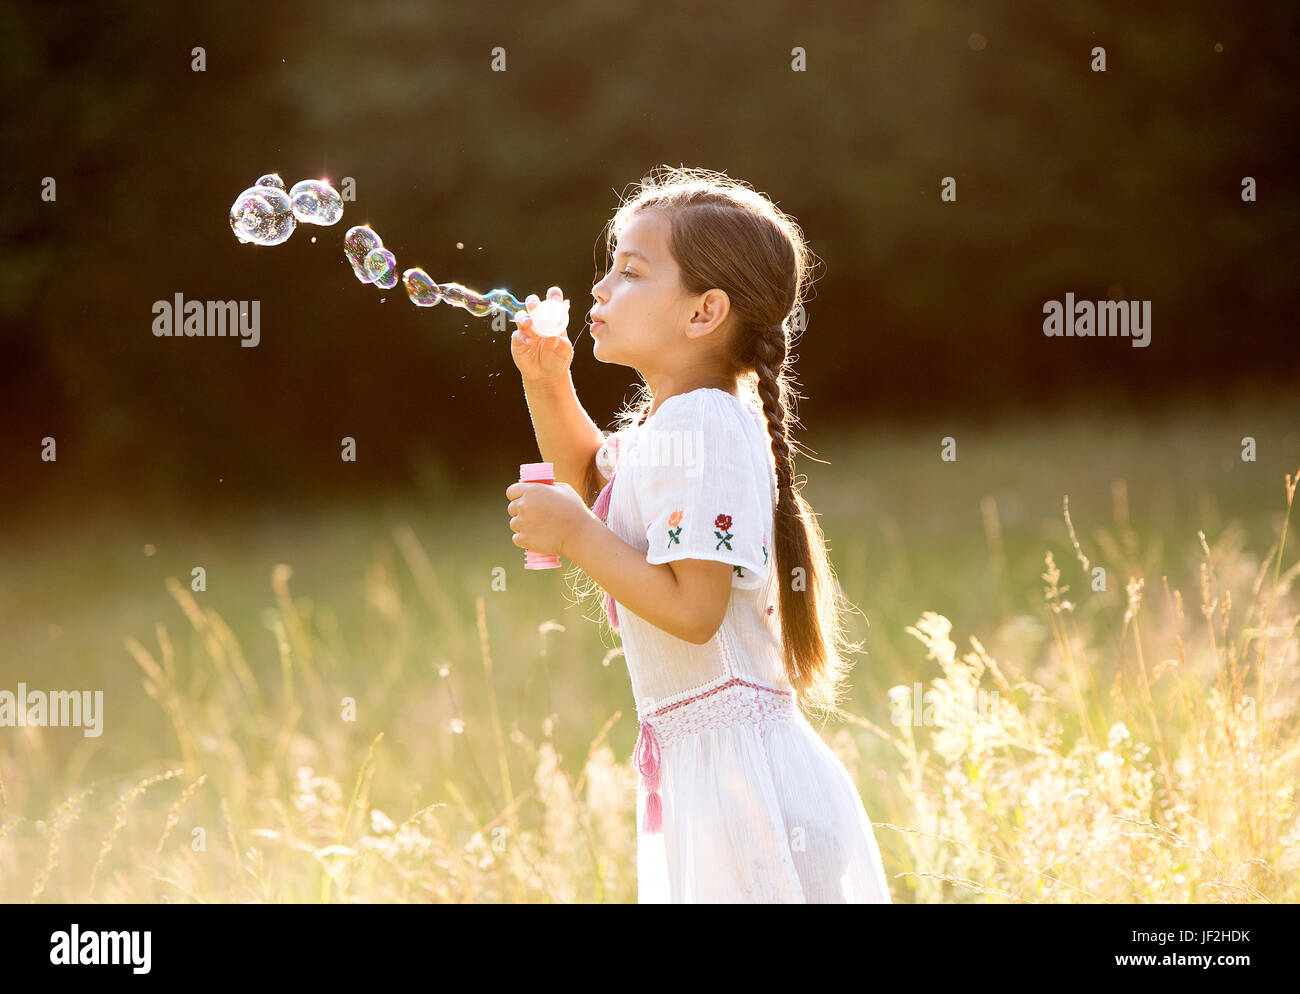 little happy girl with tight braids wearing traditional romanian blouse running outside - Stock Image